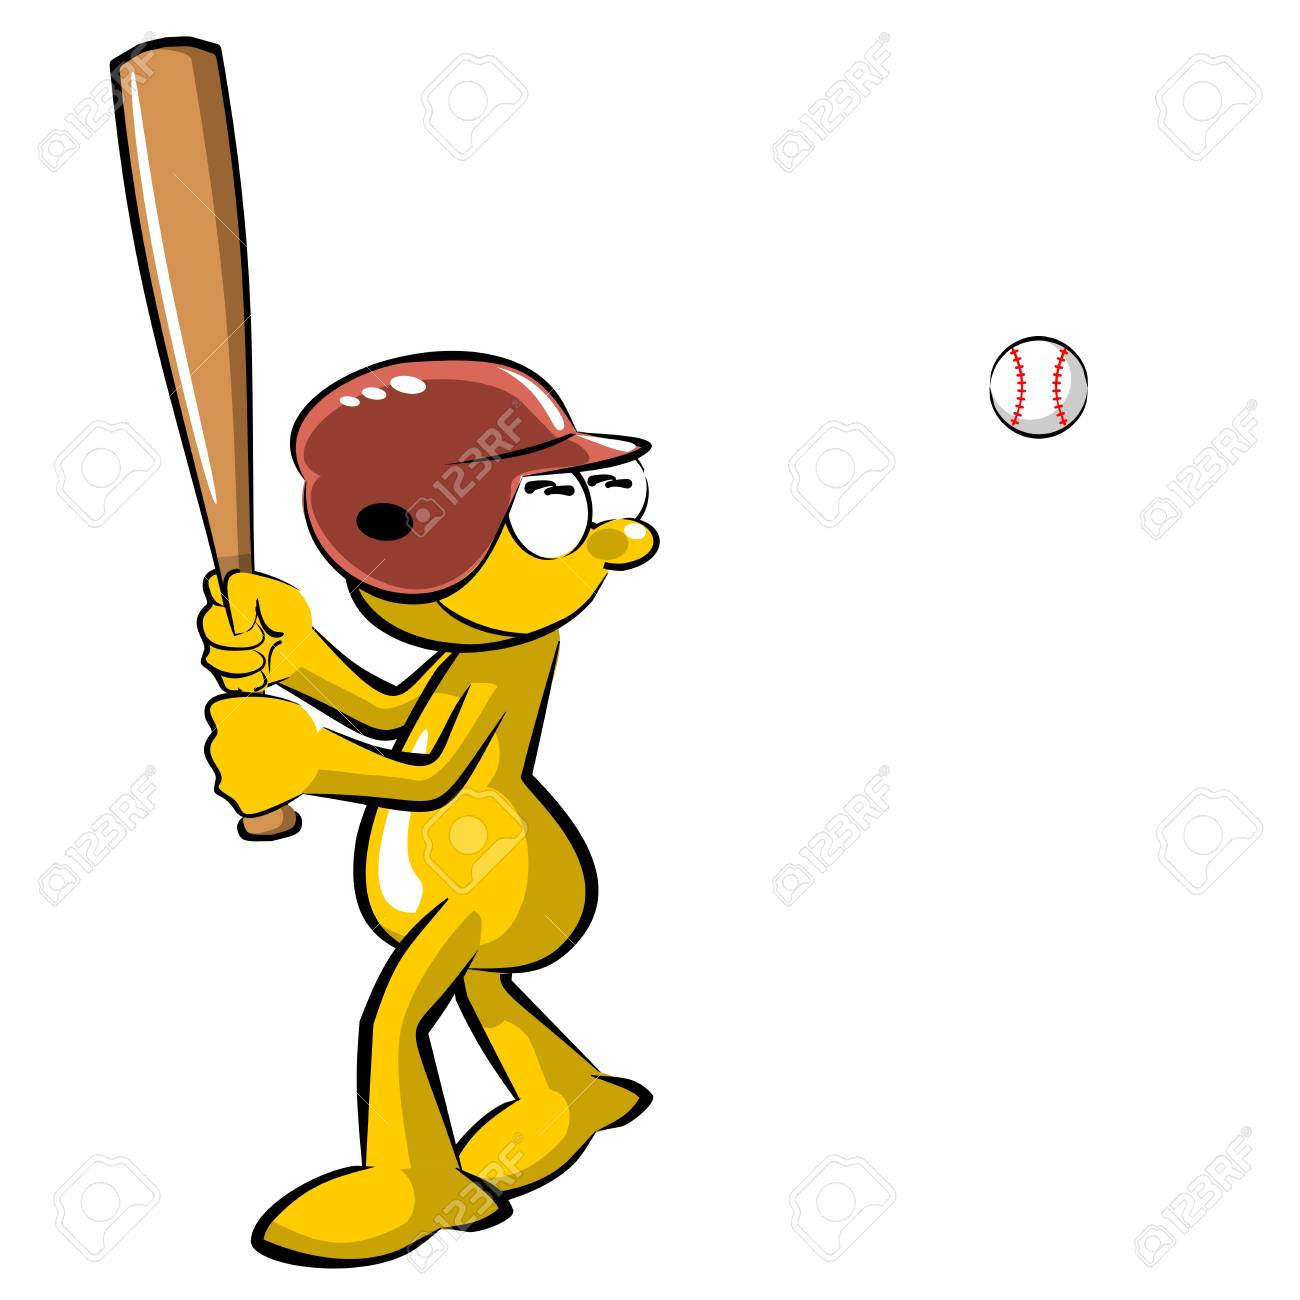 hight resolution of funny baseball batter cartoon isolated on white background stock vector 73470977